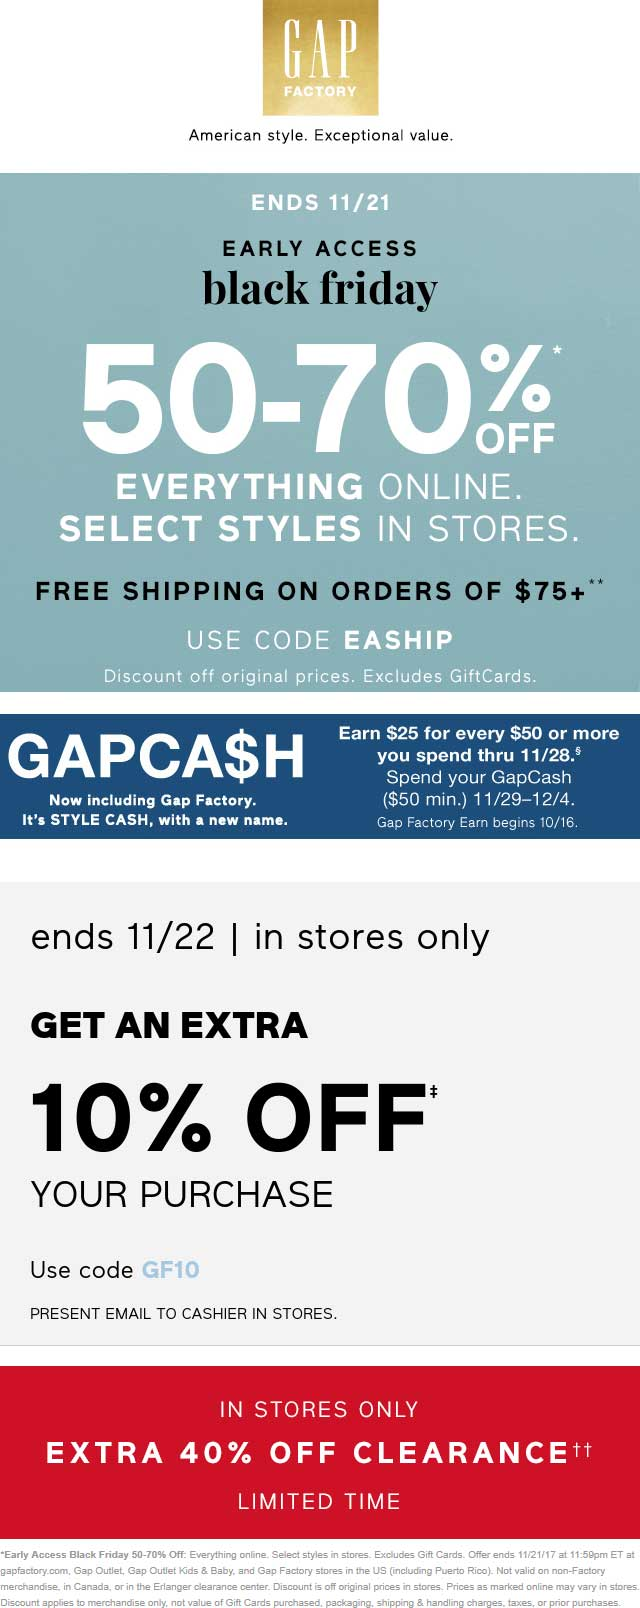 Gap Factory Coupon October 2018 50-70% off at Gap Factory, or online via promo code EASHIP